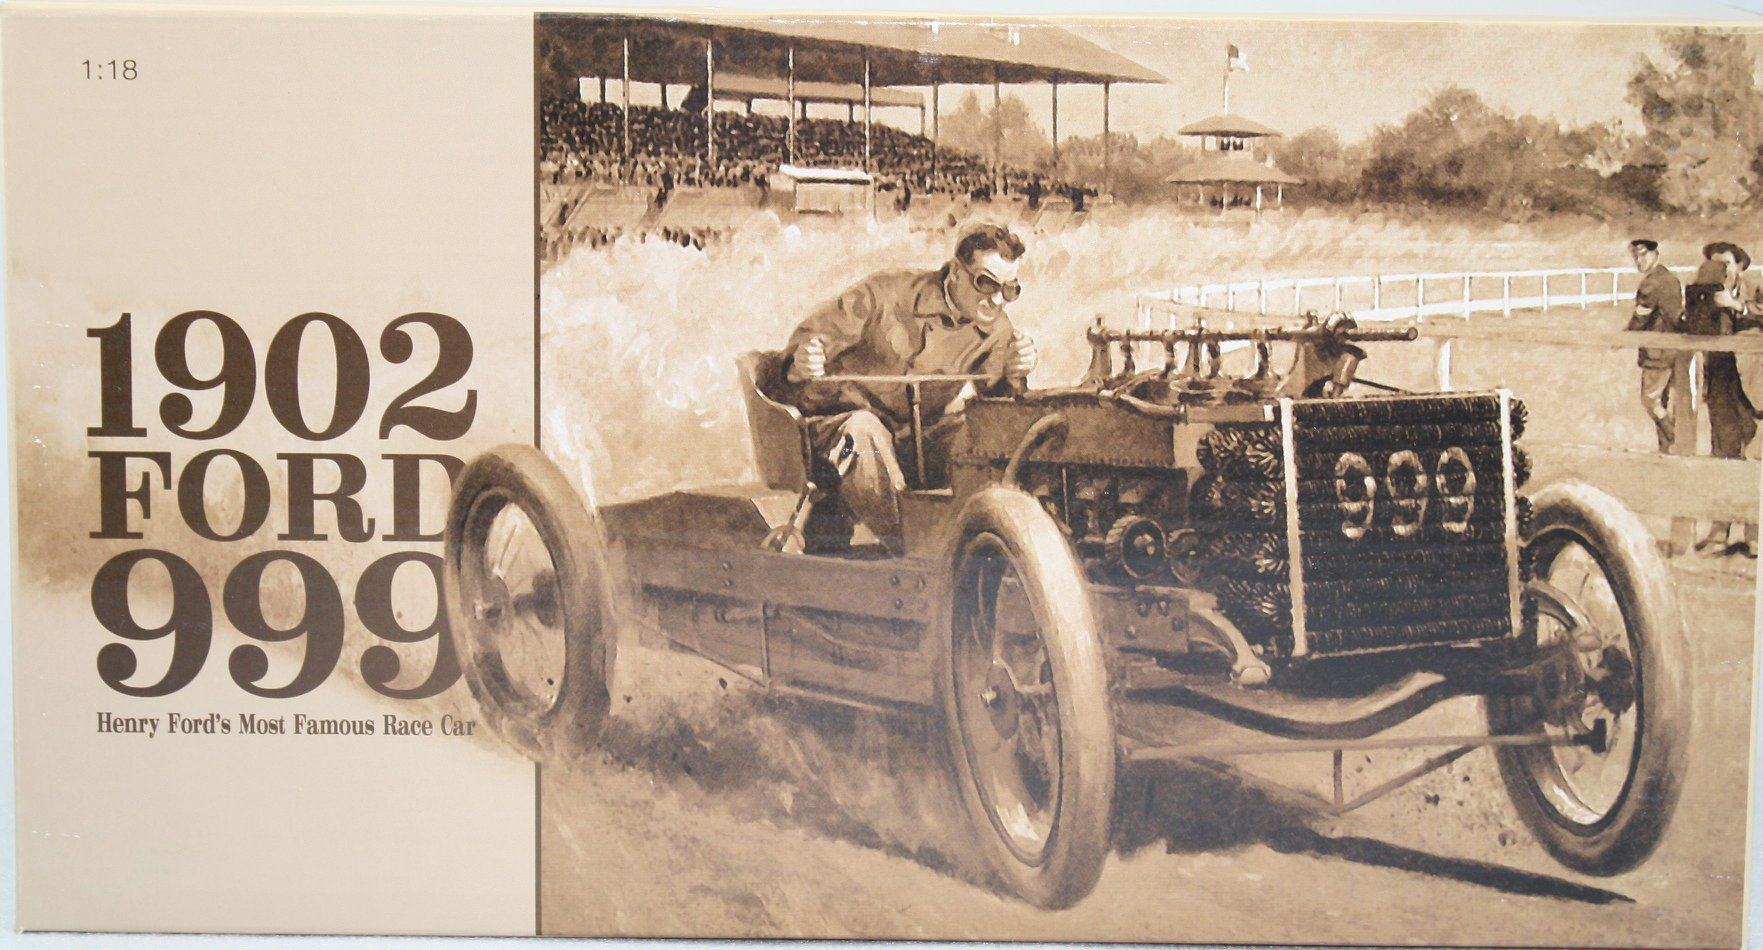 Ford-999-Race-auto-1902-(1)